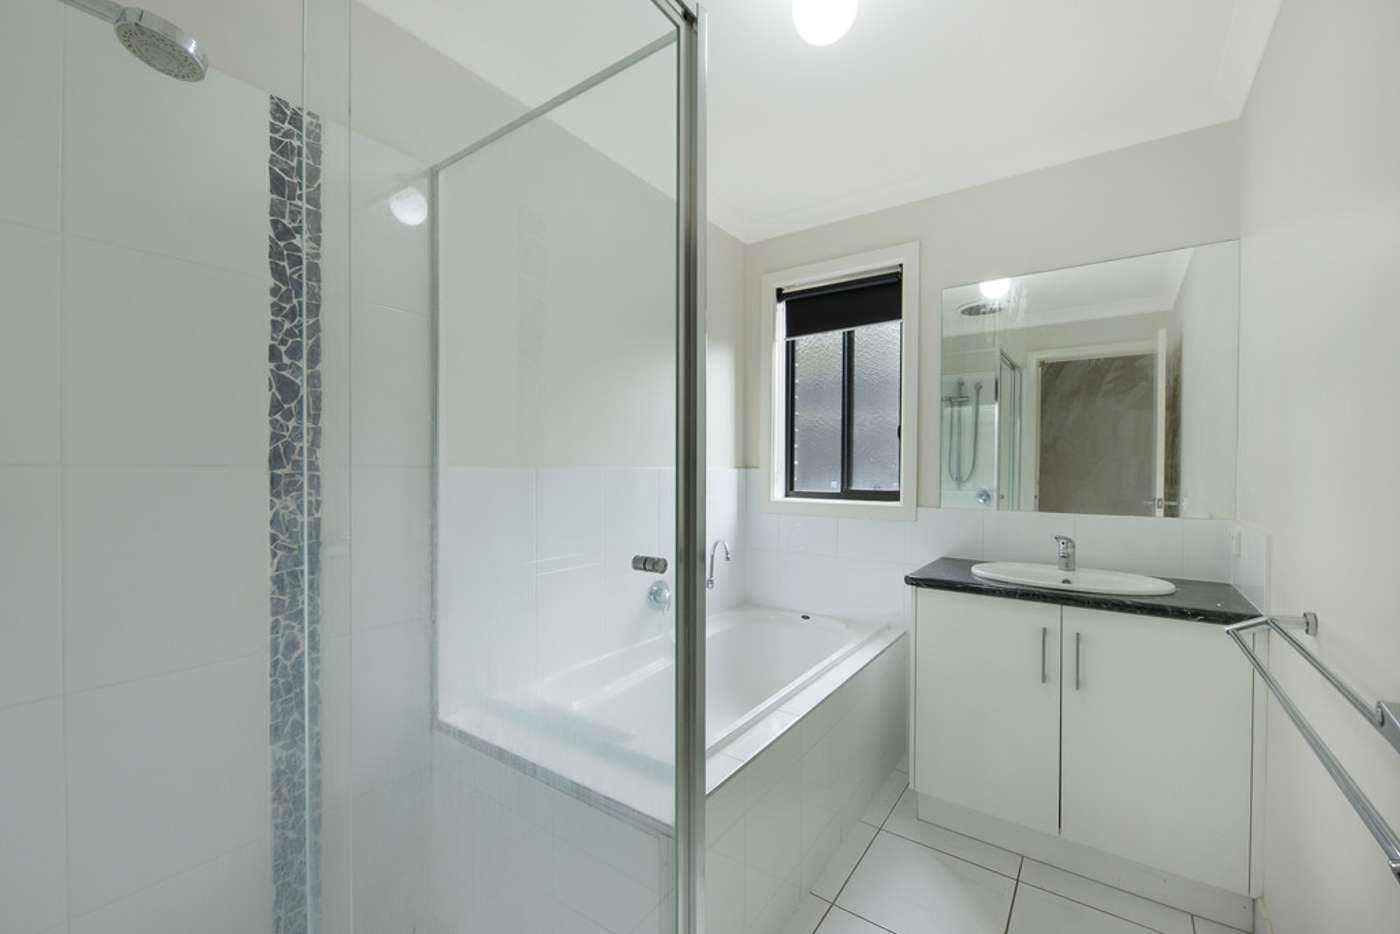 Seventh view of Homely house listing, 11 McAuliffe Street, Wodonga VIC 3690